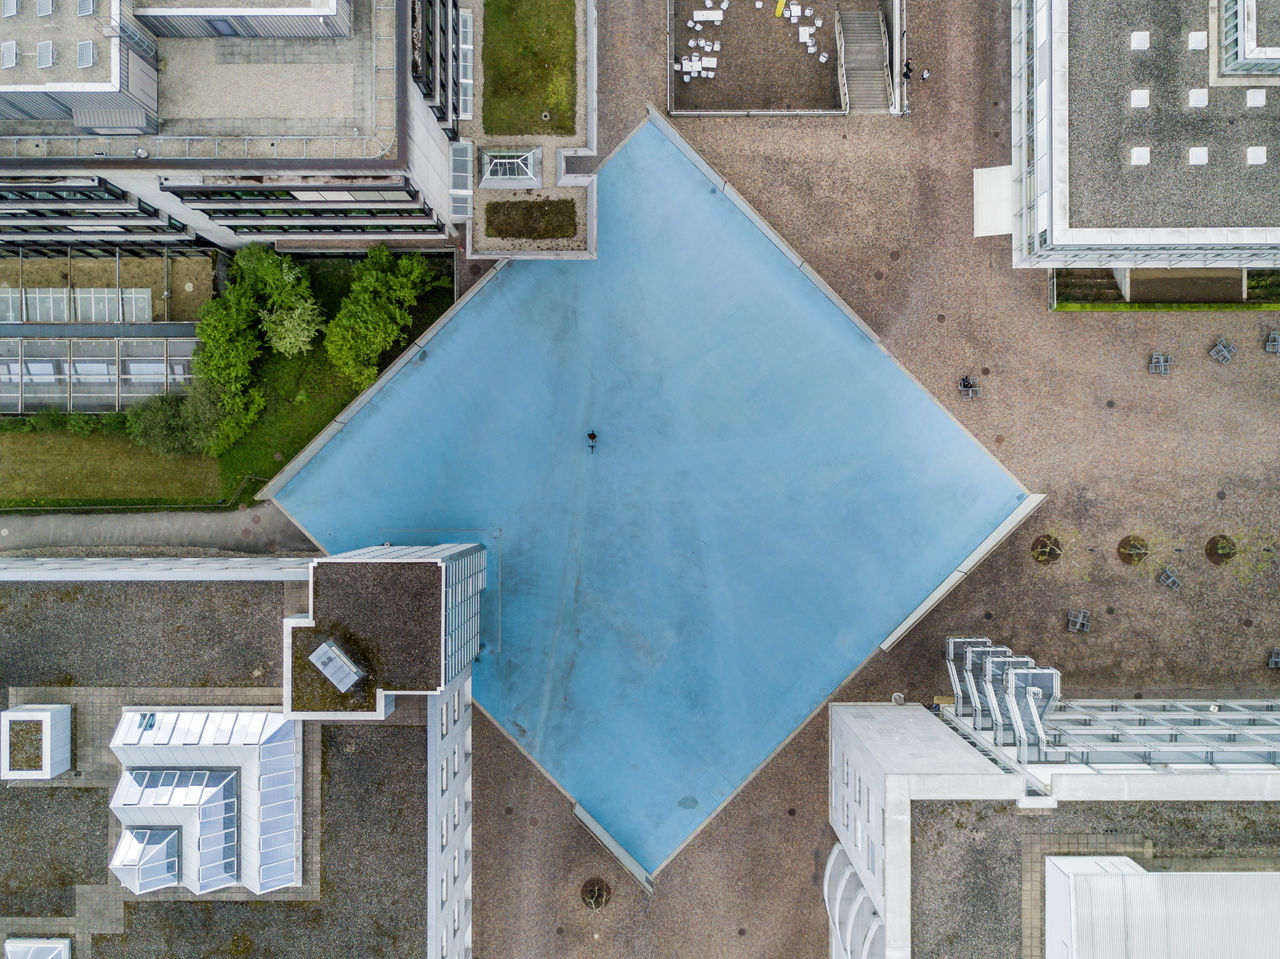 Architecture Building Exterior Built Structure Chair City Day High Angle View No People Outdoors Swimming Pool Water